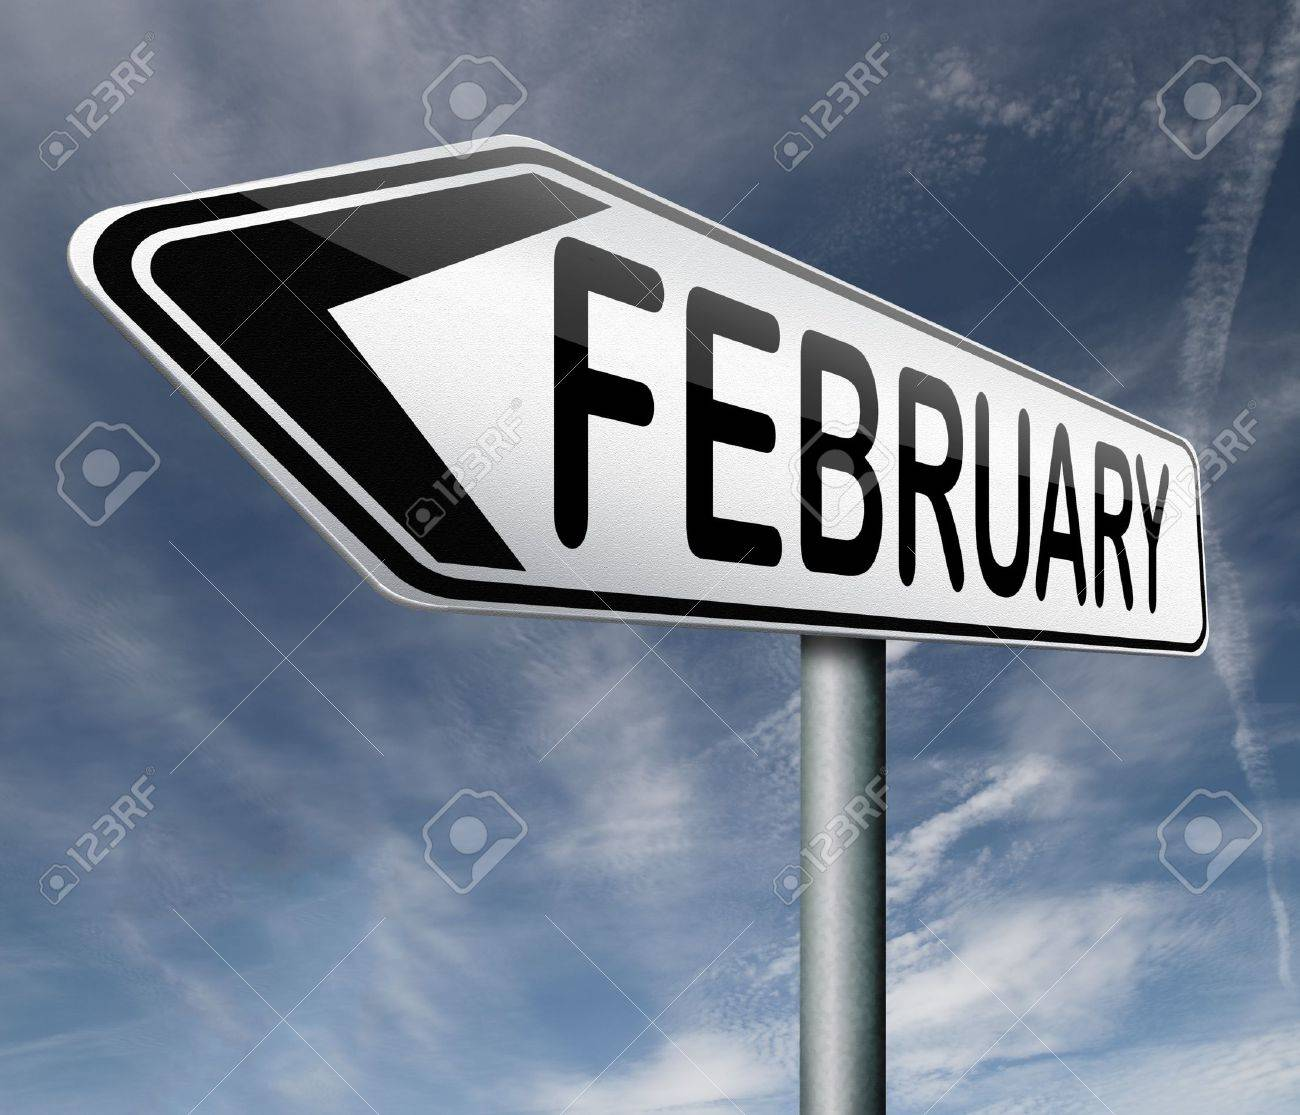 february month road sign Stock Photo - 17463095